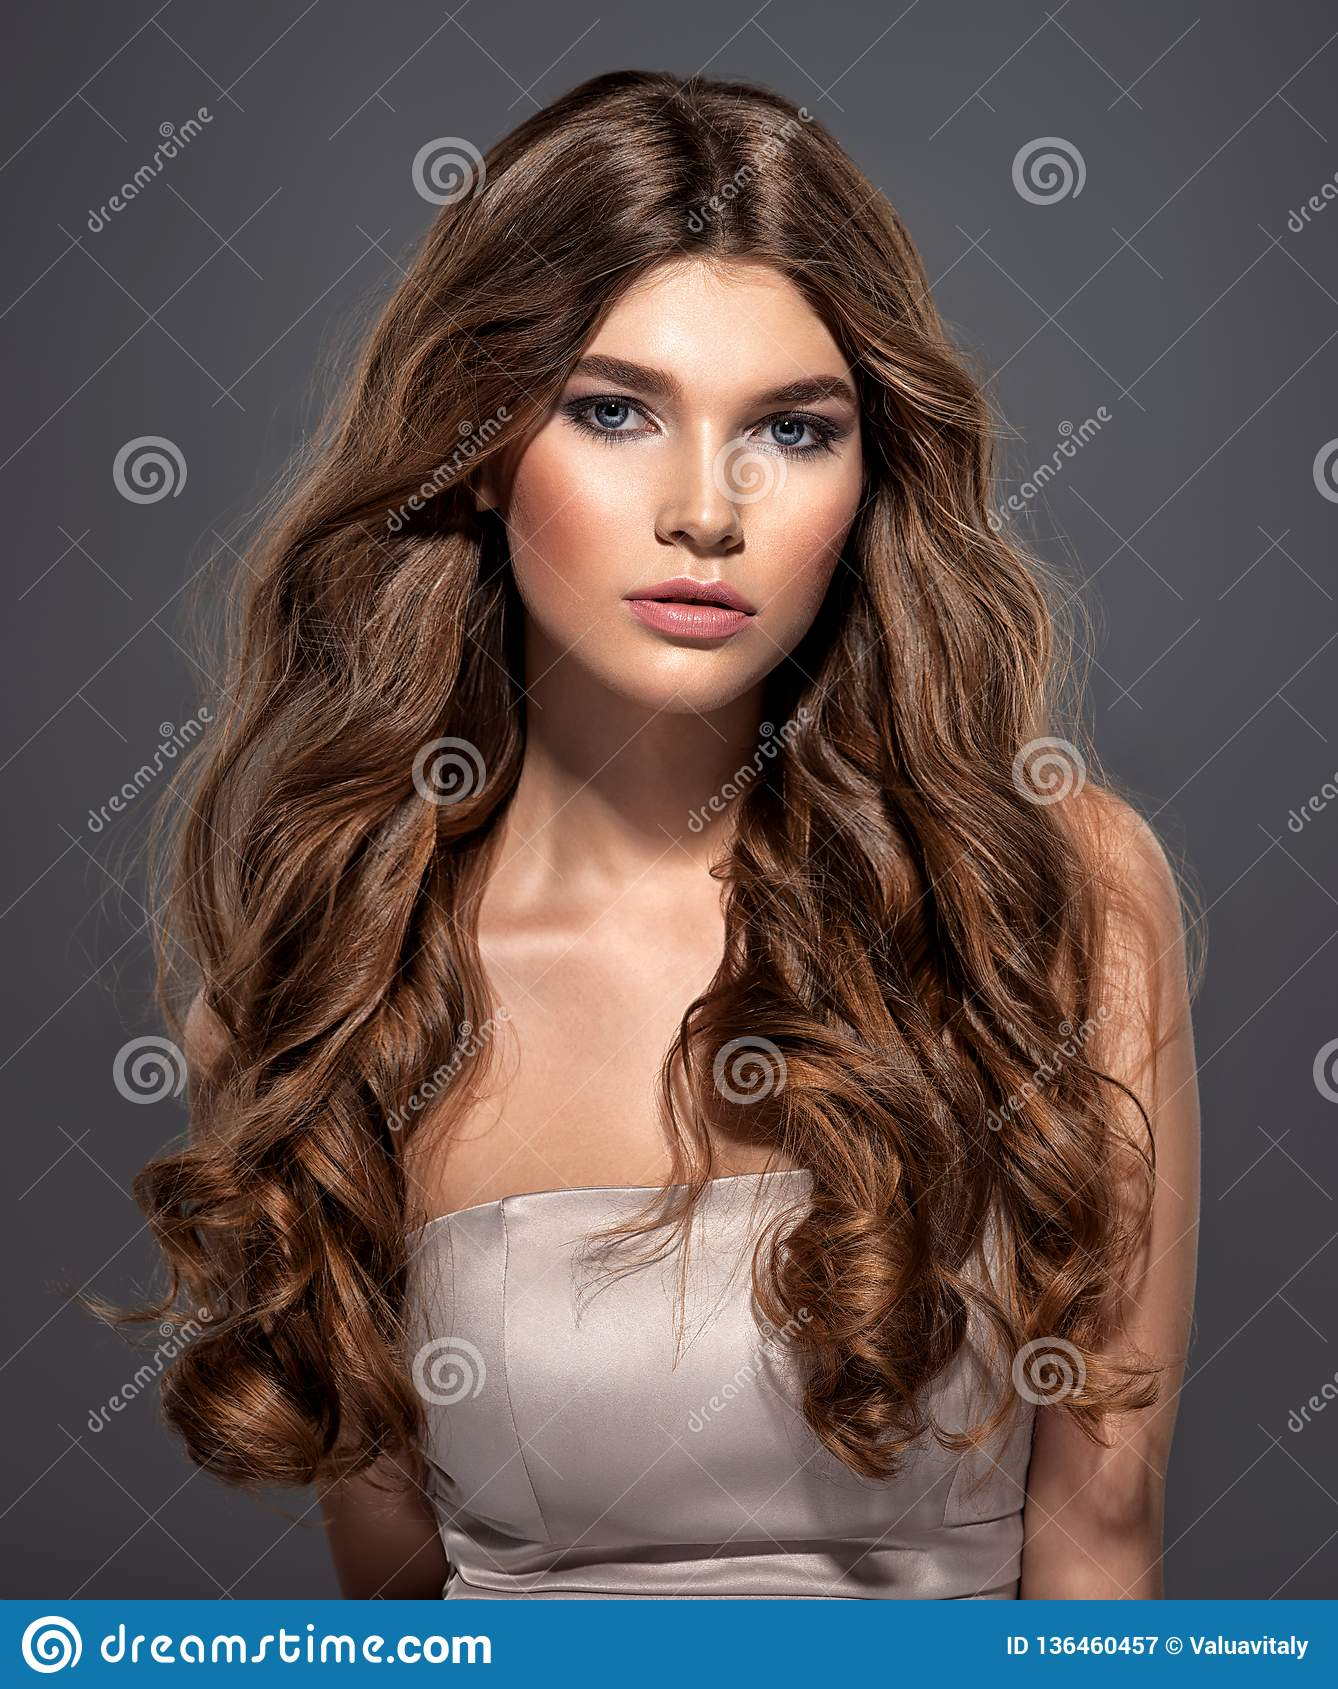 And Gorgeous Brown Haired Woman With Long Curly Hair Stock Image